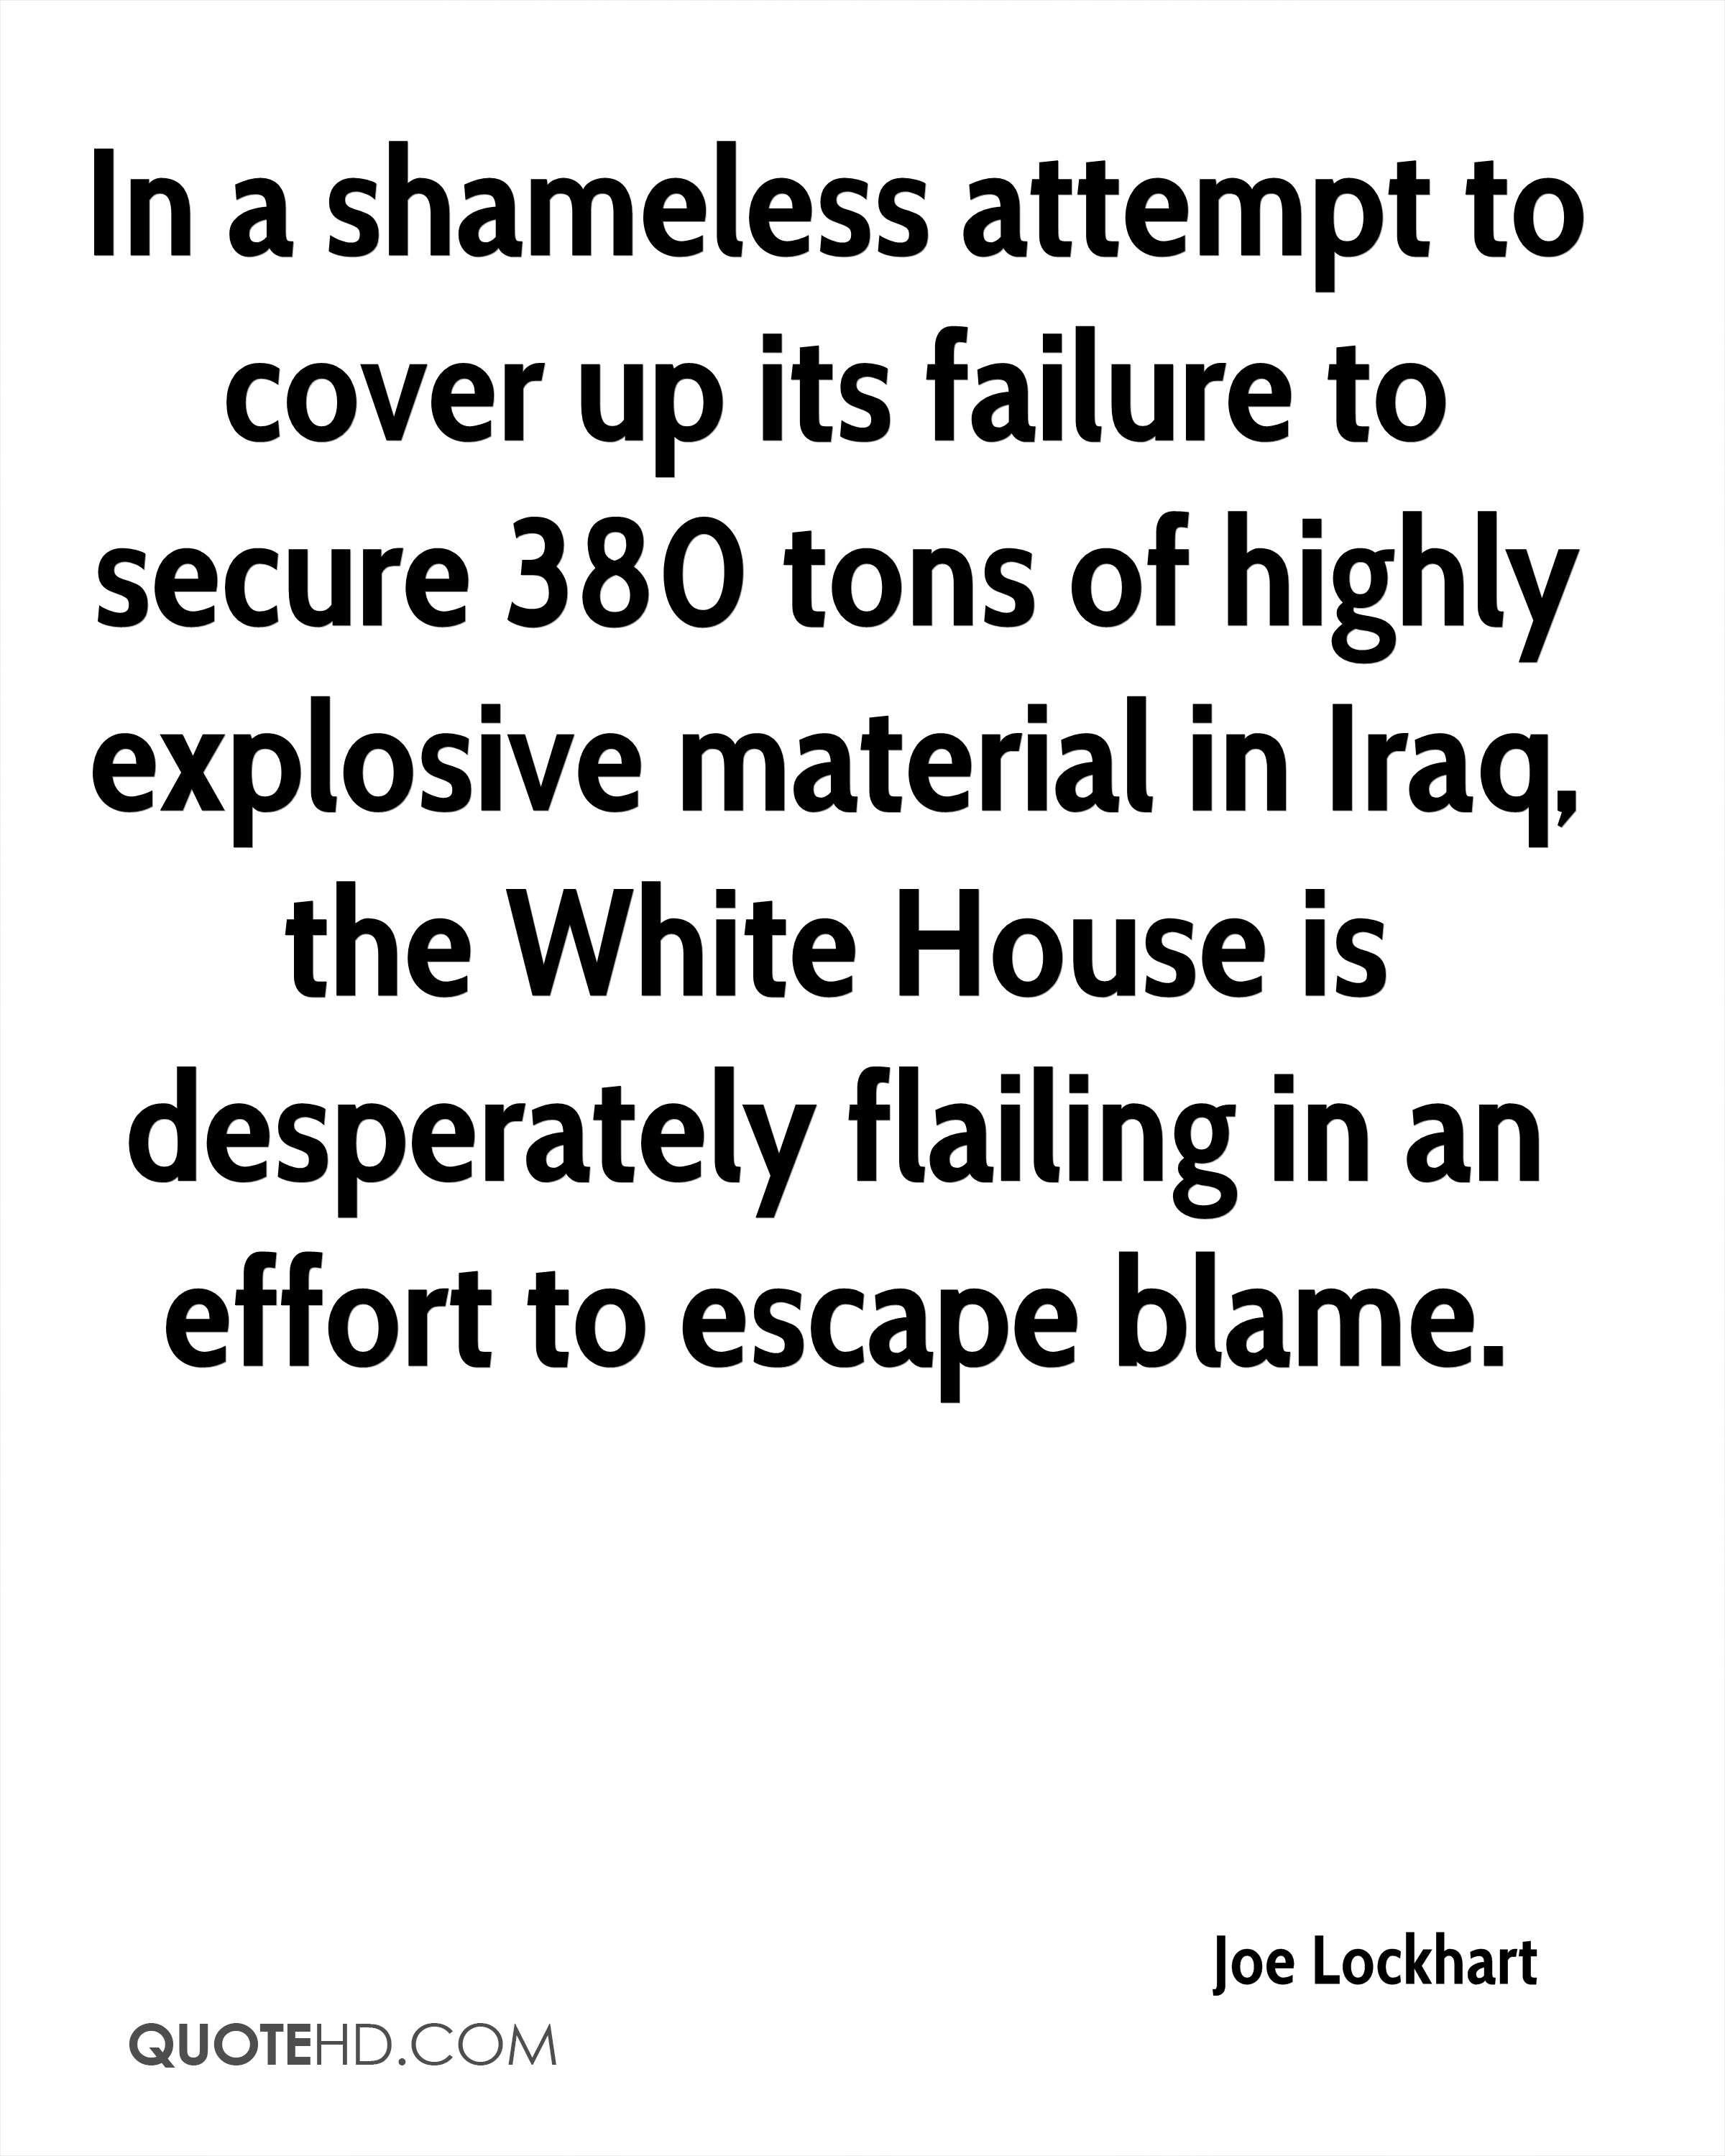 In a shameless attempt to cover up its failure to secure 380 tons of highly explosive material in Iraq, the White House is desperately flailing in an effort to escape blame.